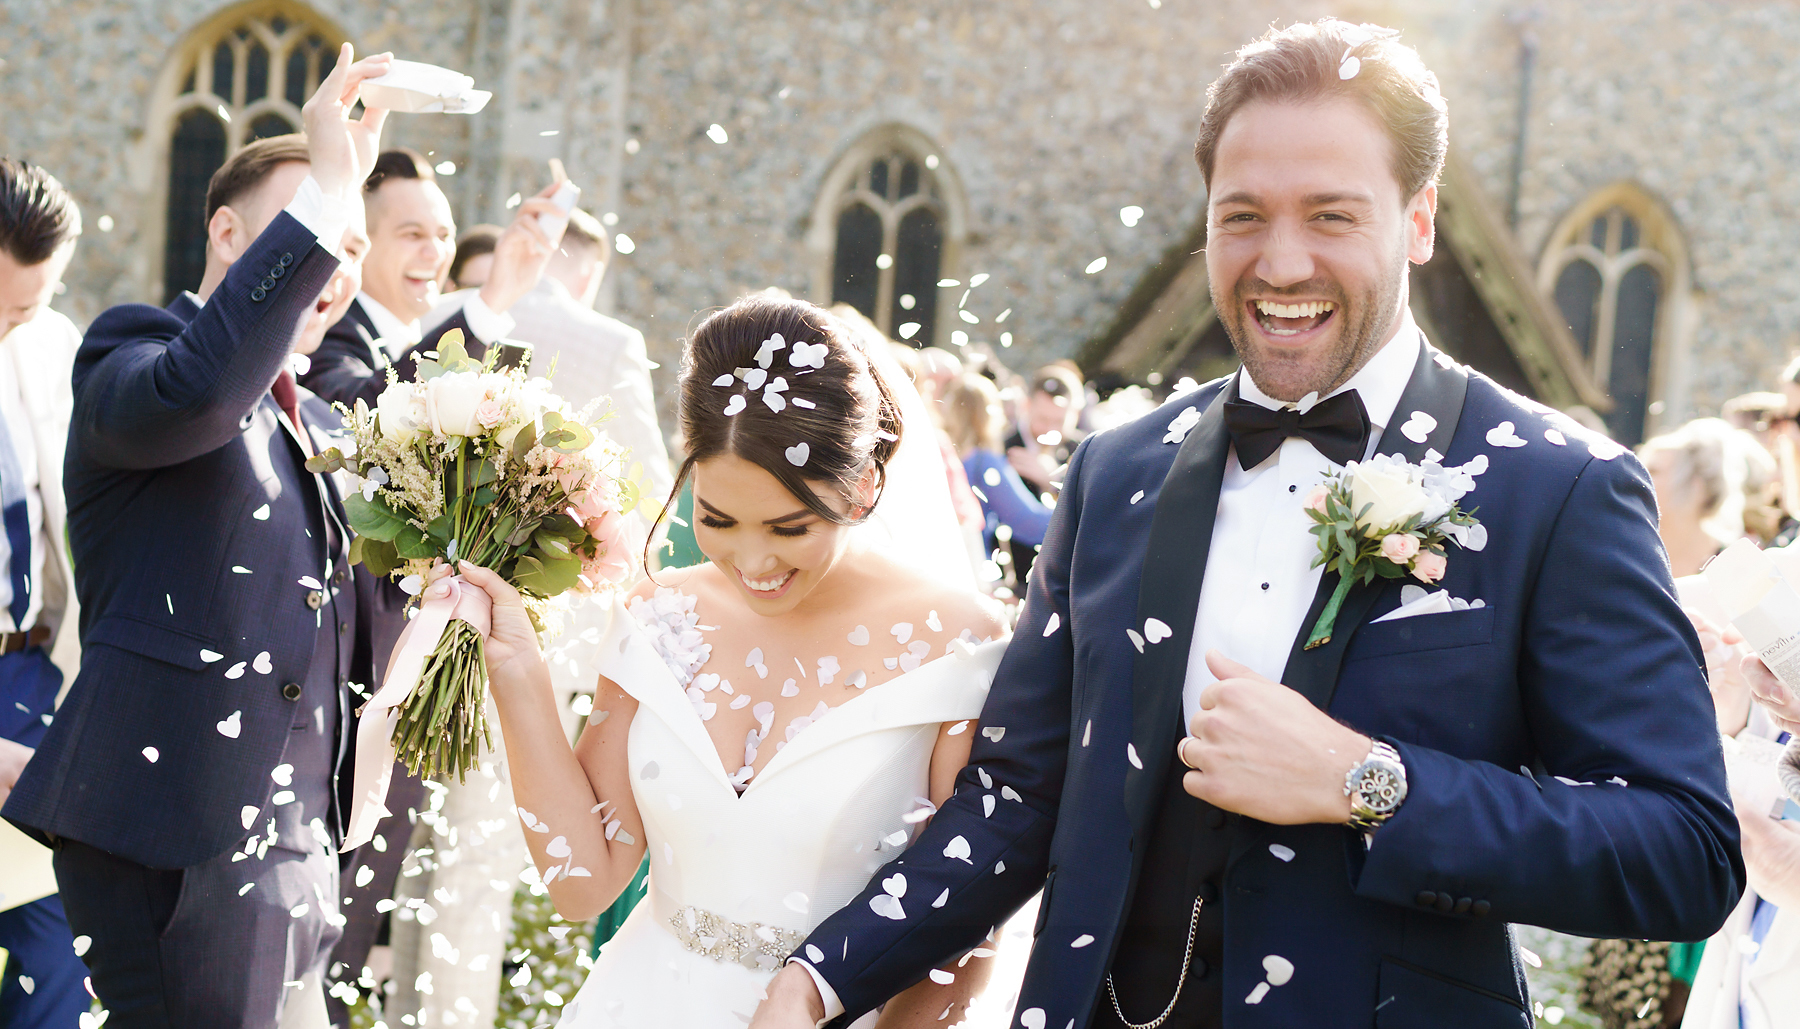 Jordan and Adam's confetti photograph at their wedding at Hatfield Place